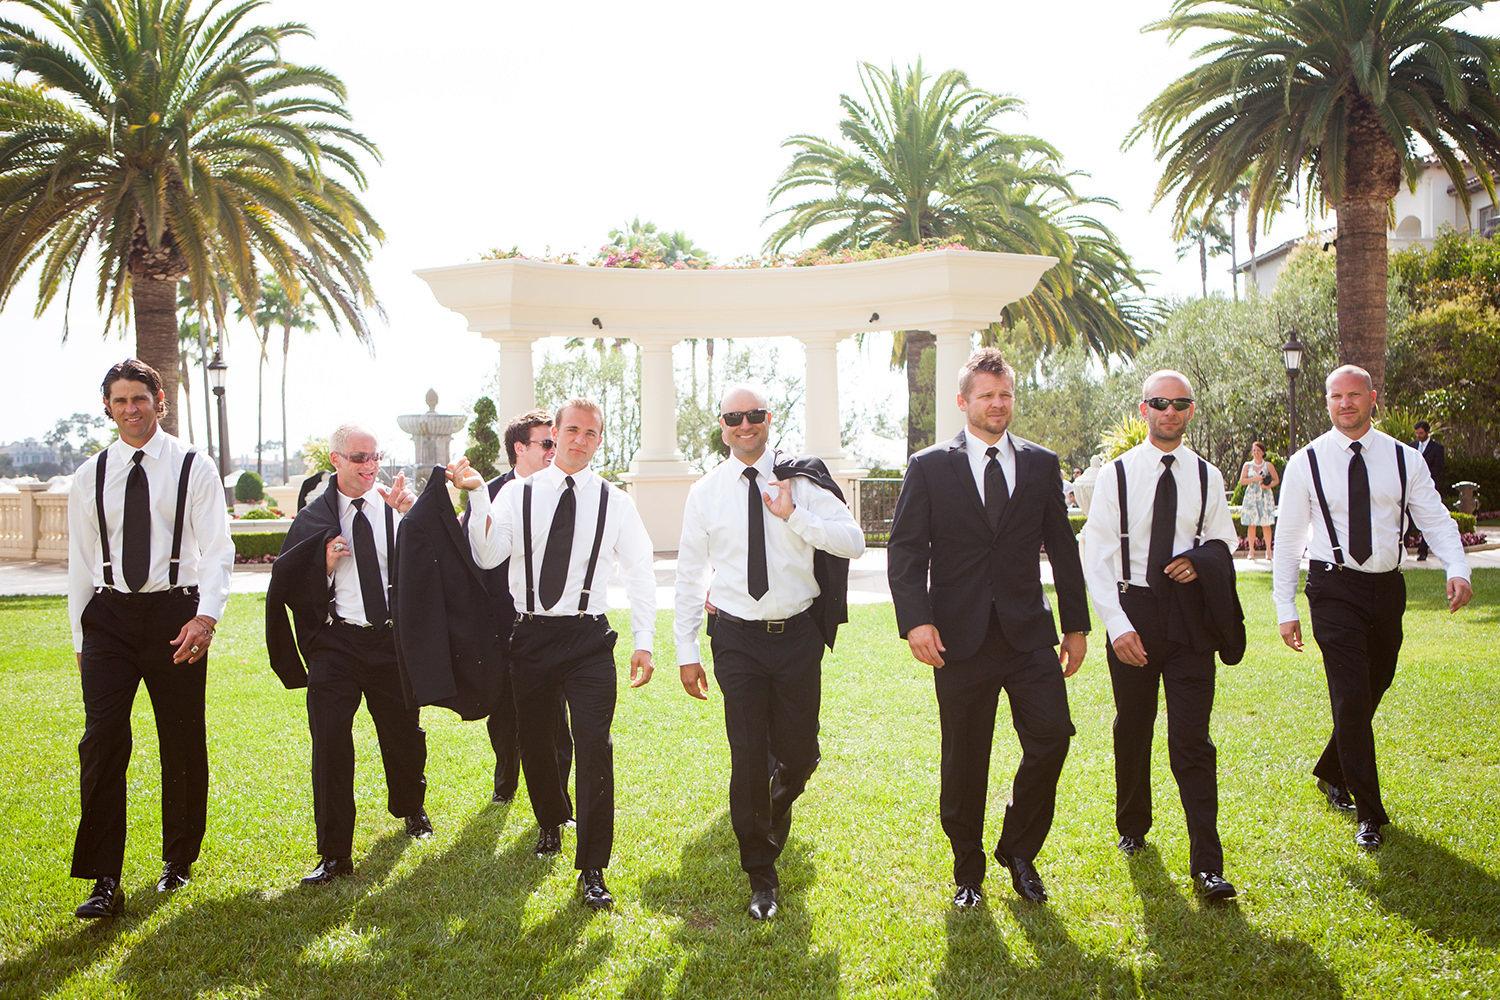 reservoir dogs styled groomsmen shot